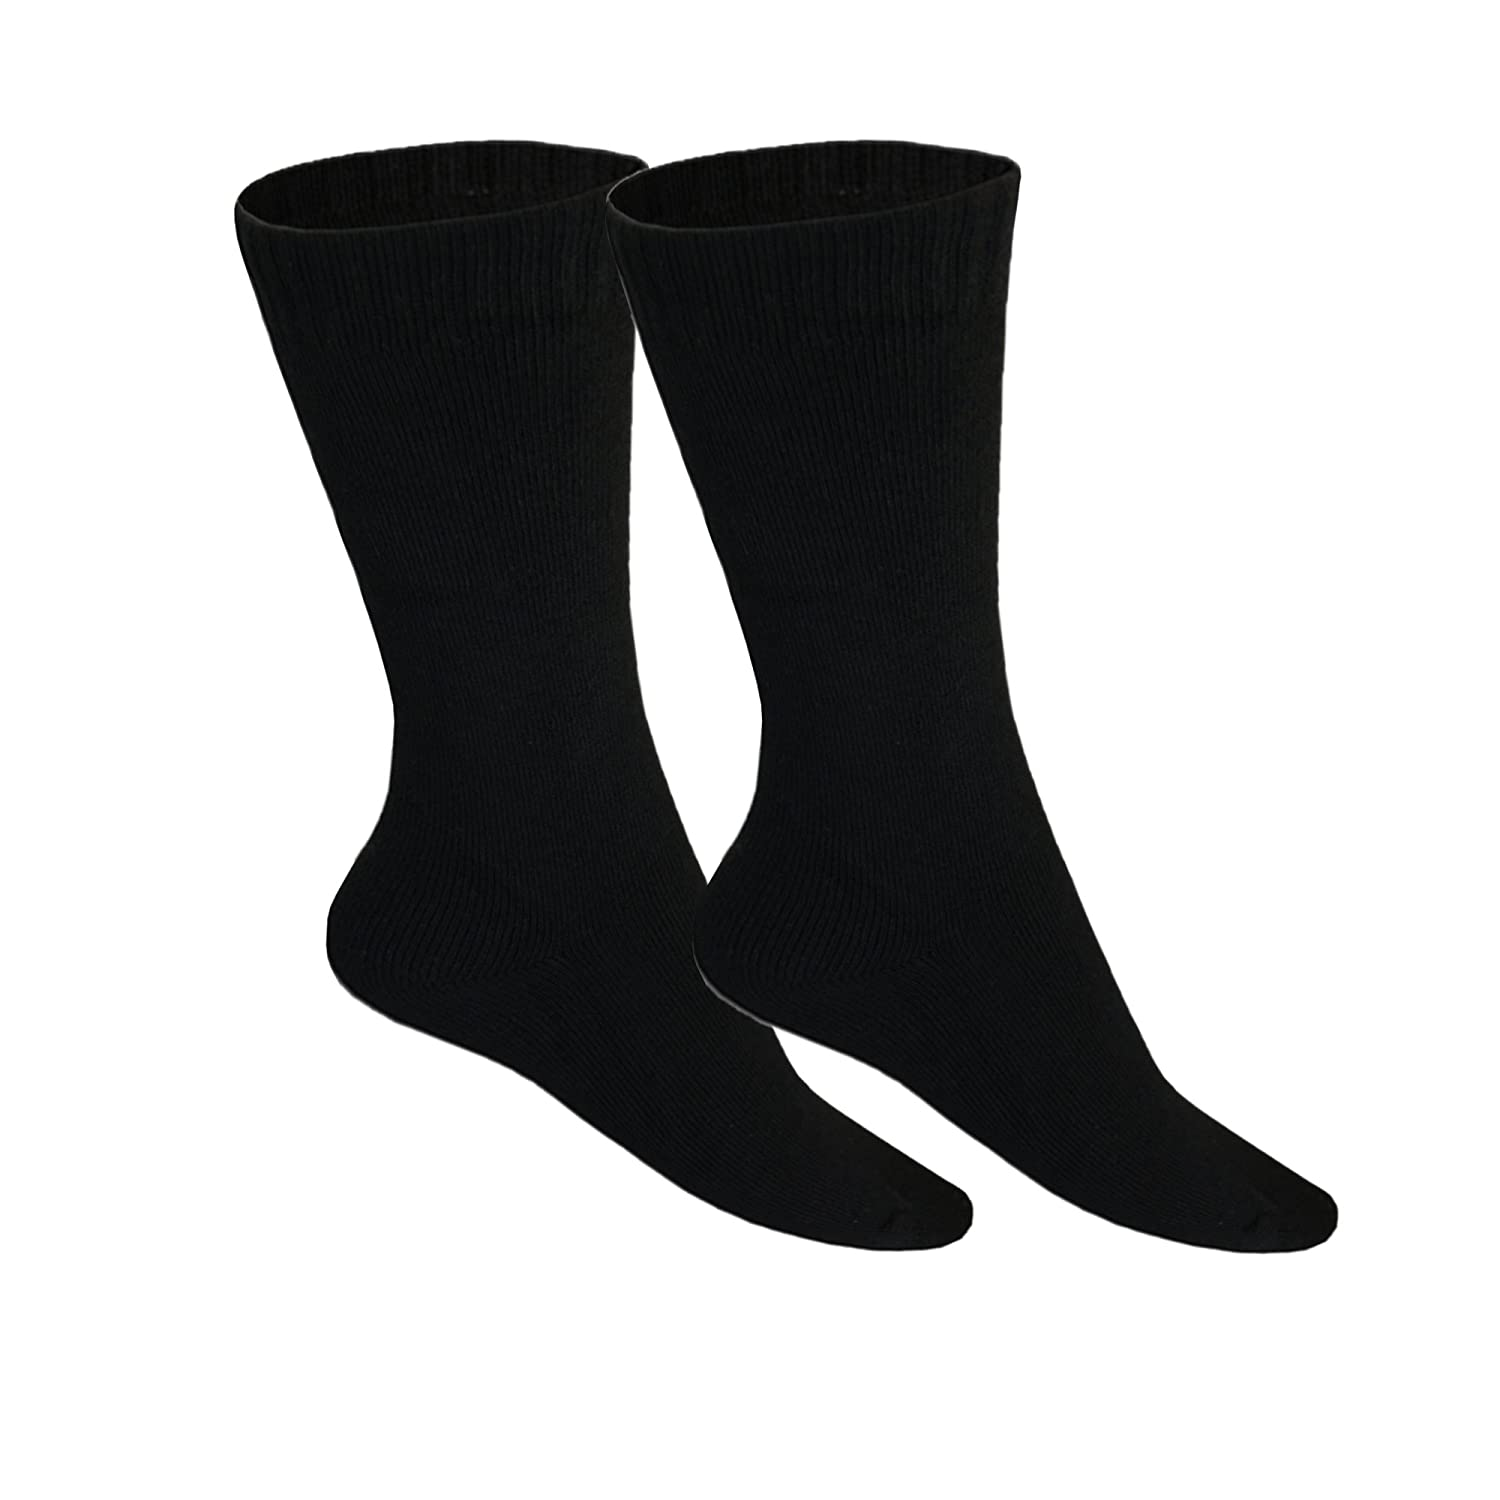 Wintersocken Damen Softsail Schwarz Thermosocken Dick Warm